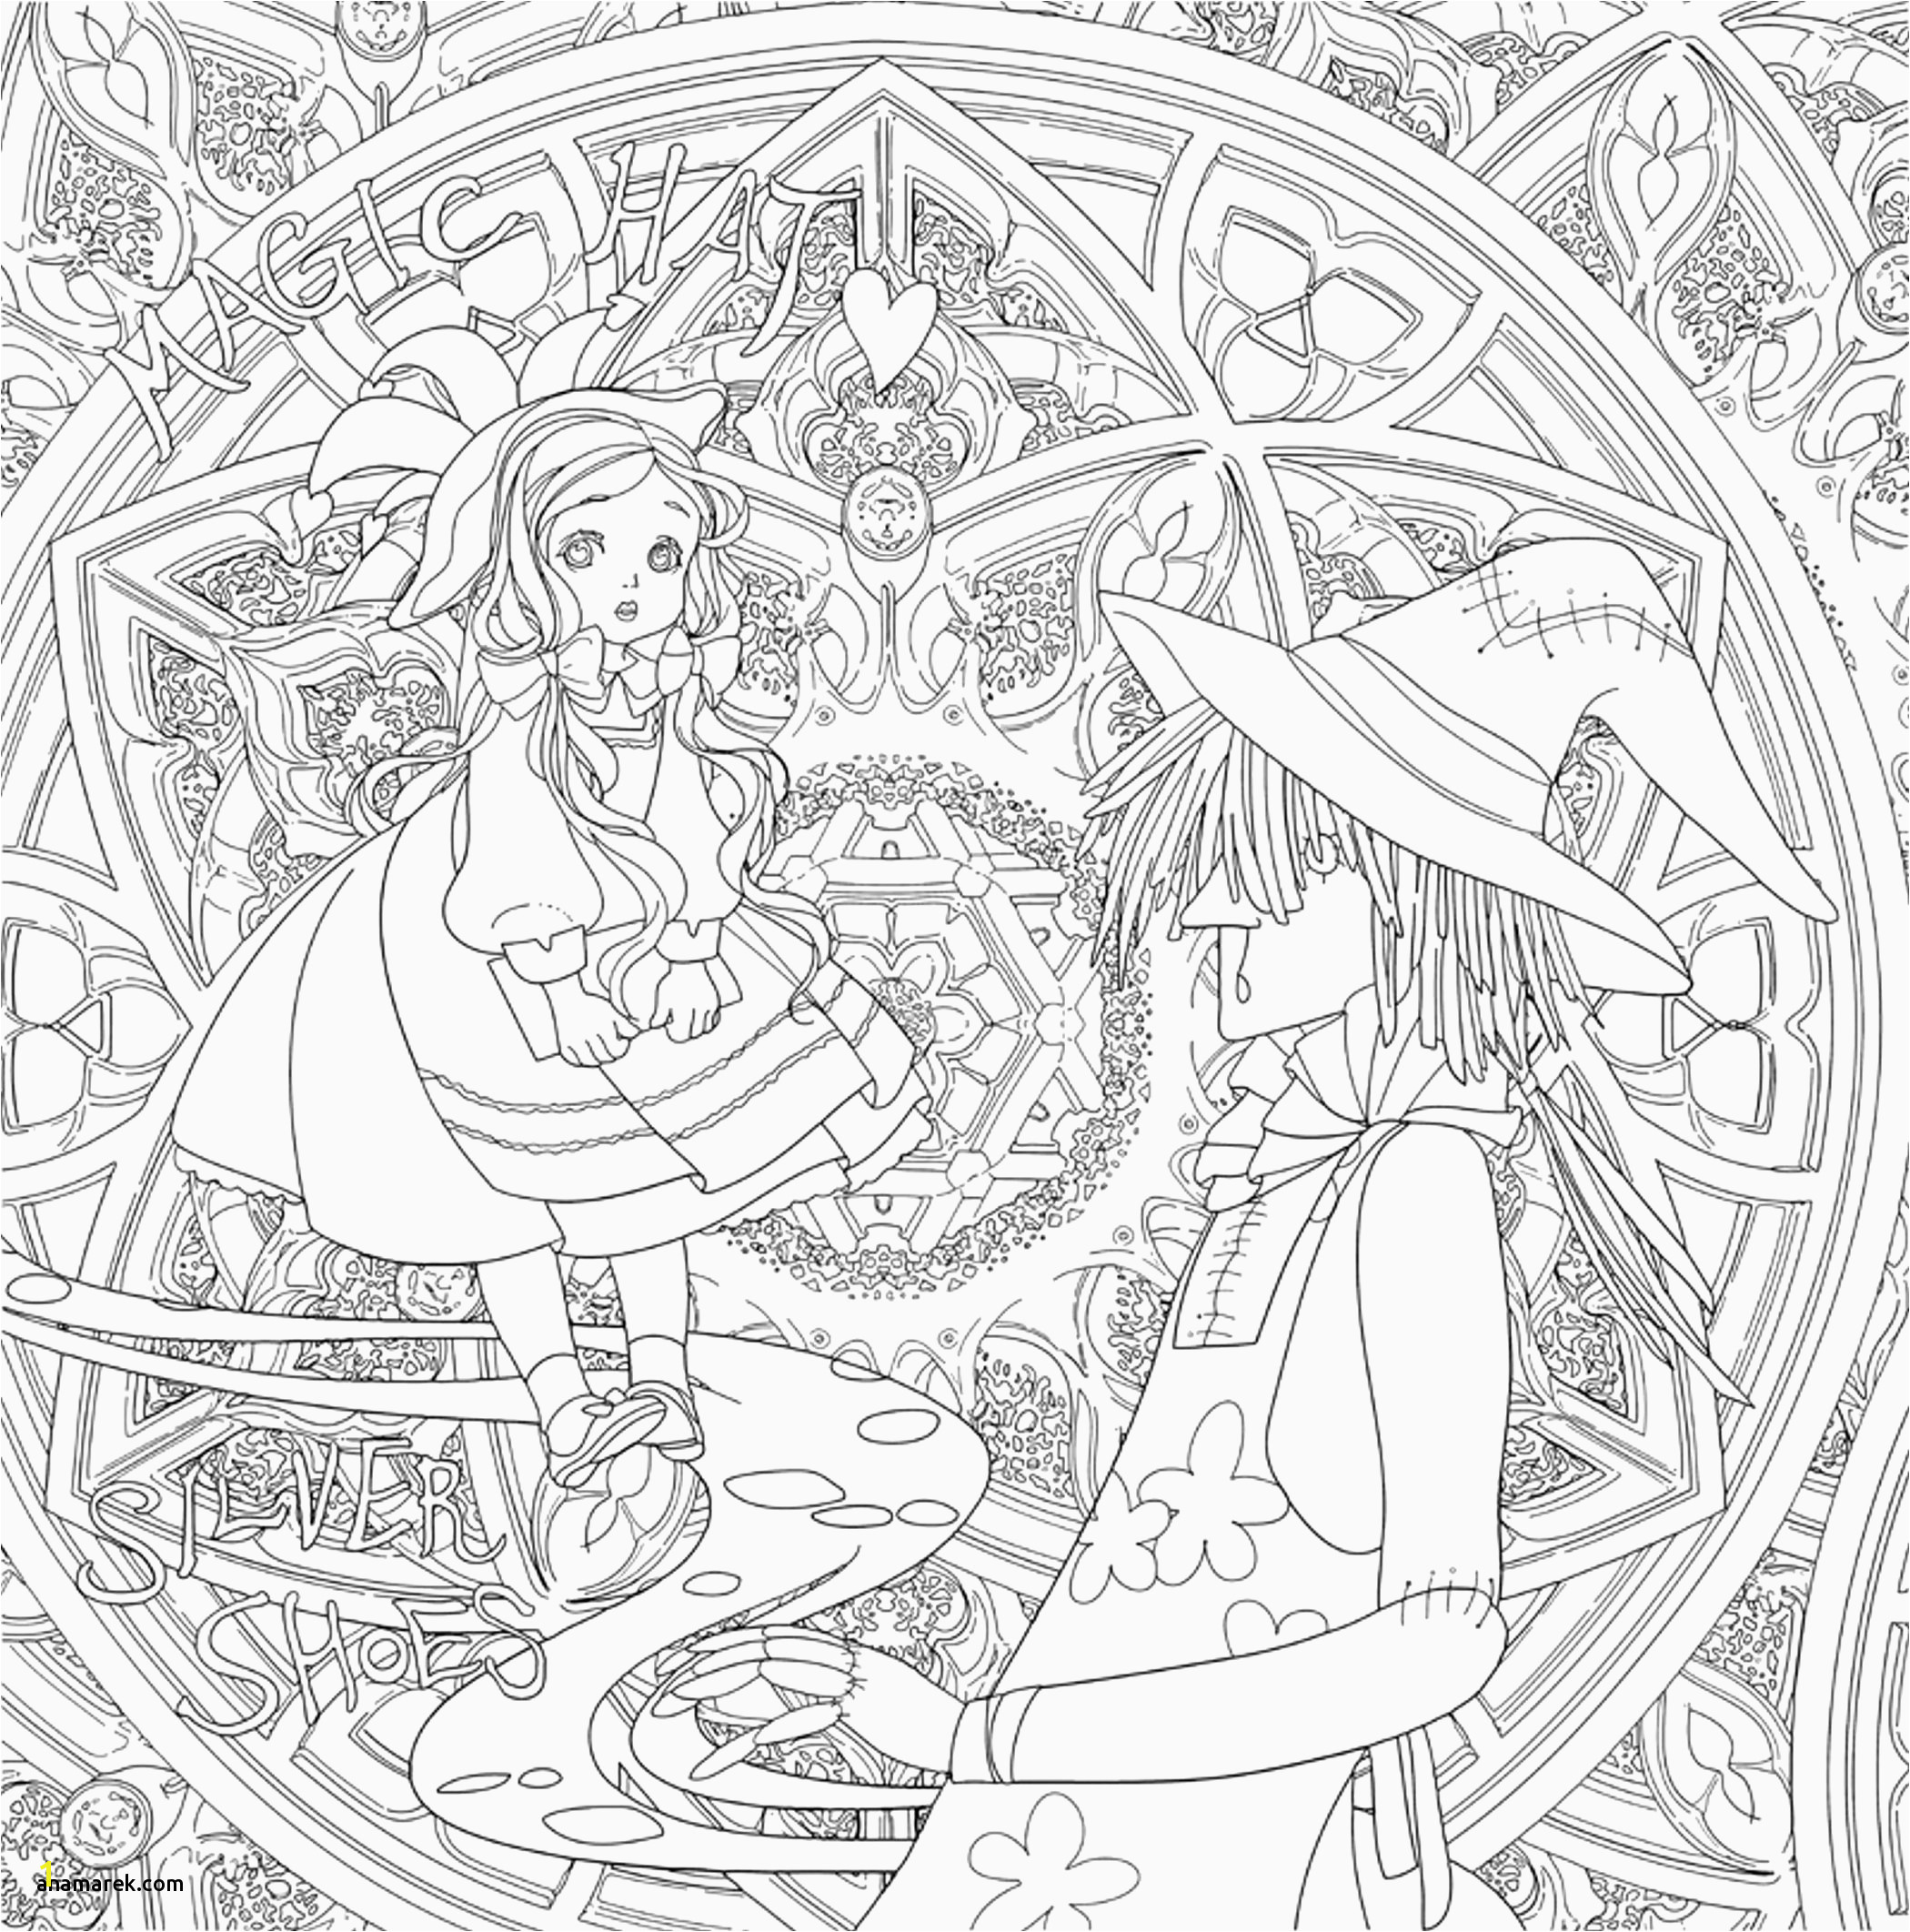 Coloring Book Luxury Pics To Color Fresh R Rated Coloring Pages Luxury Printable Cds 0d Coloring melanie martinez cry